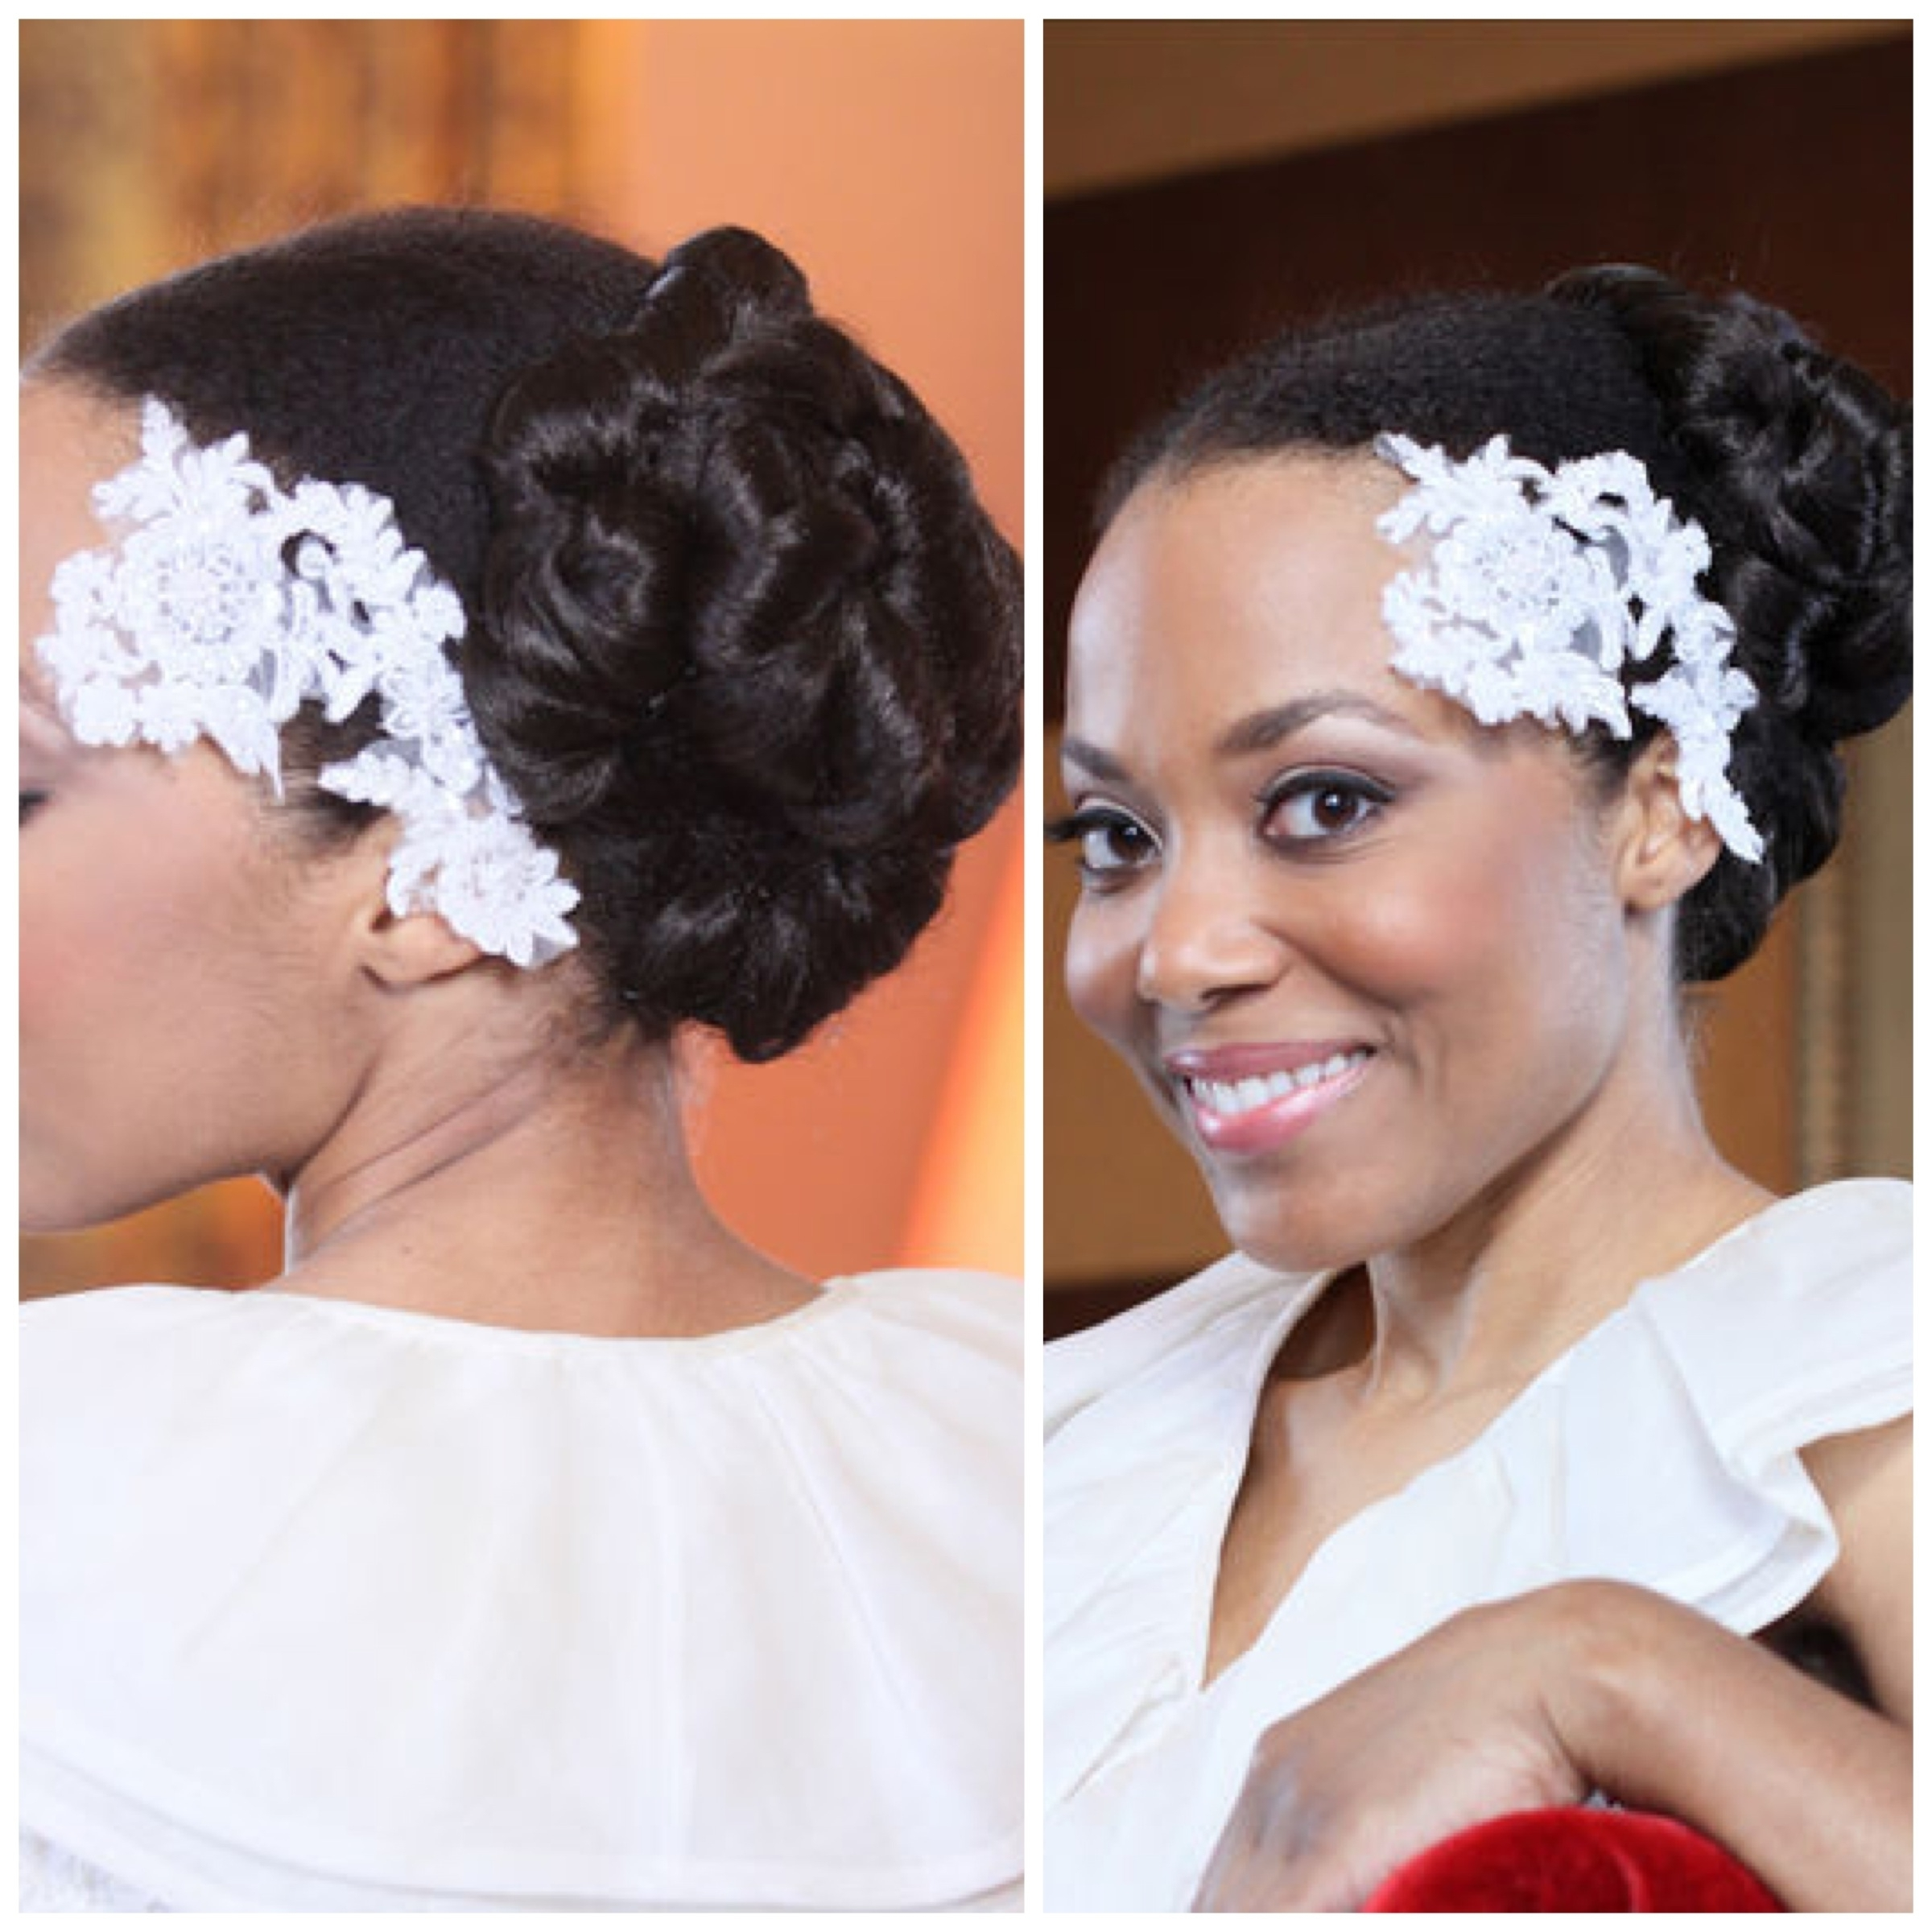 Pleasant Black Bride Updo Hairstyles With Updo Hairstyles For Black Bride Updo Hairstyles (View 12 of 15)